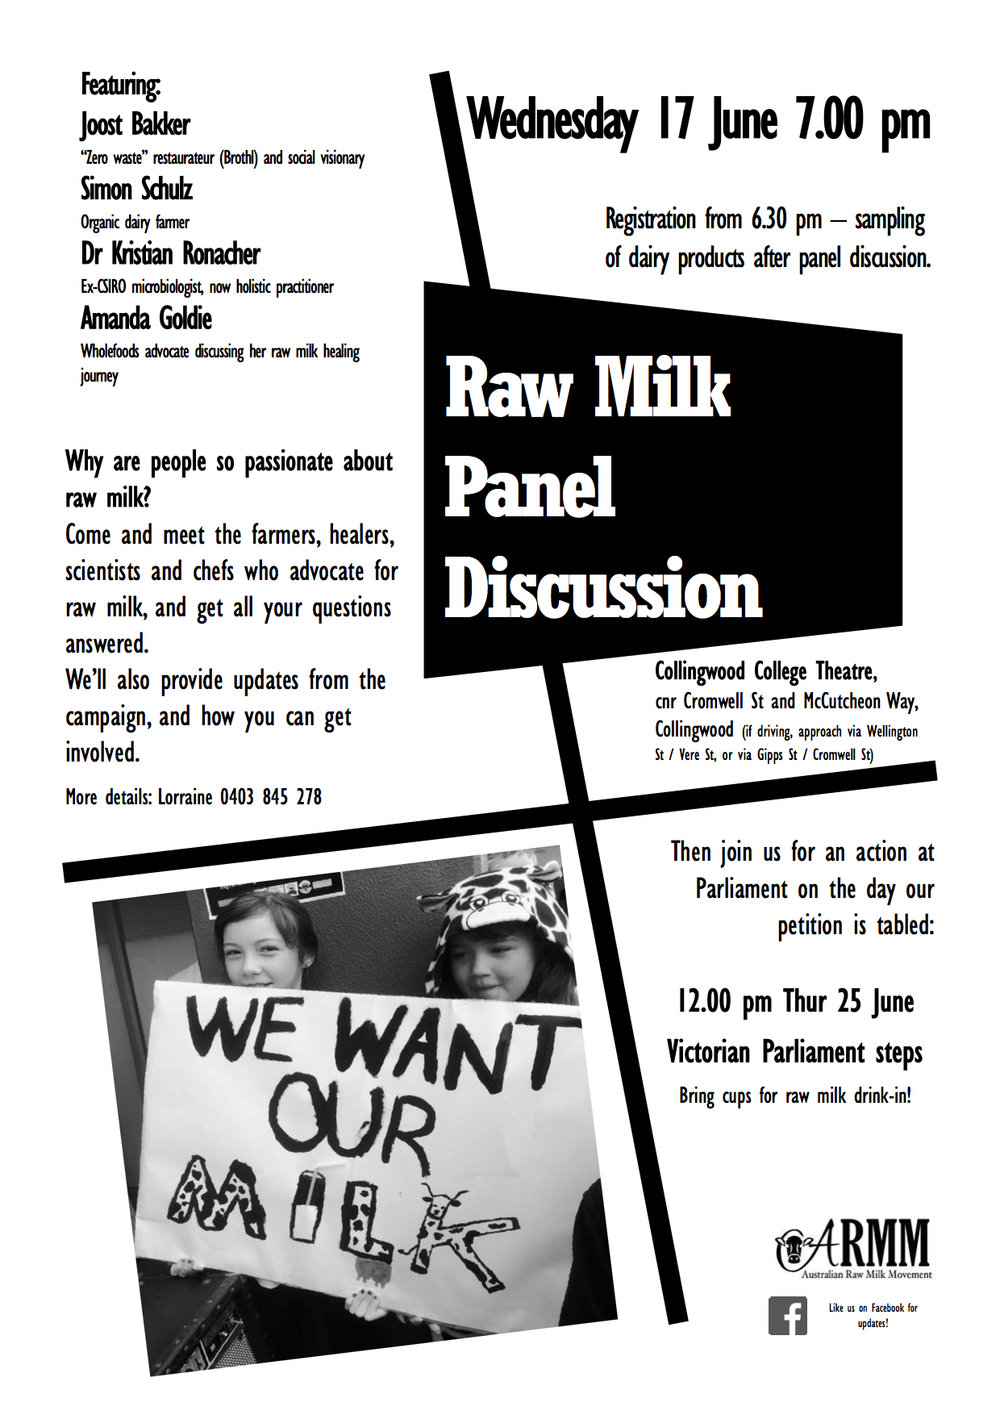 Raw Milk Panel Discussion Flyer